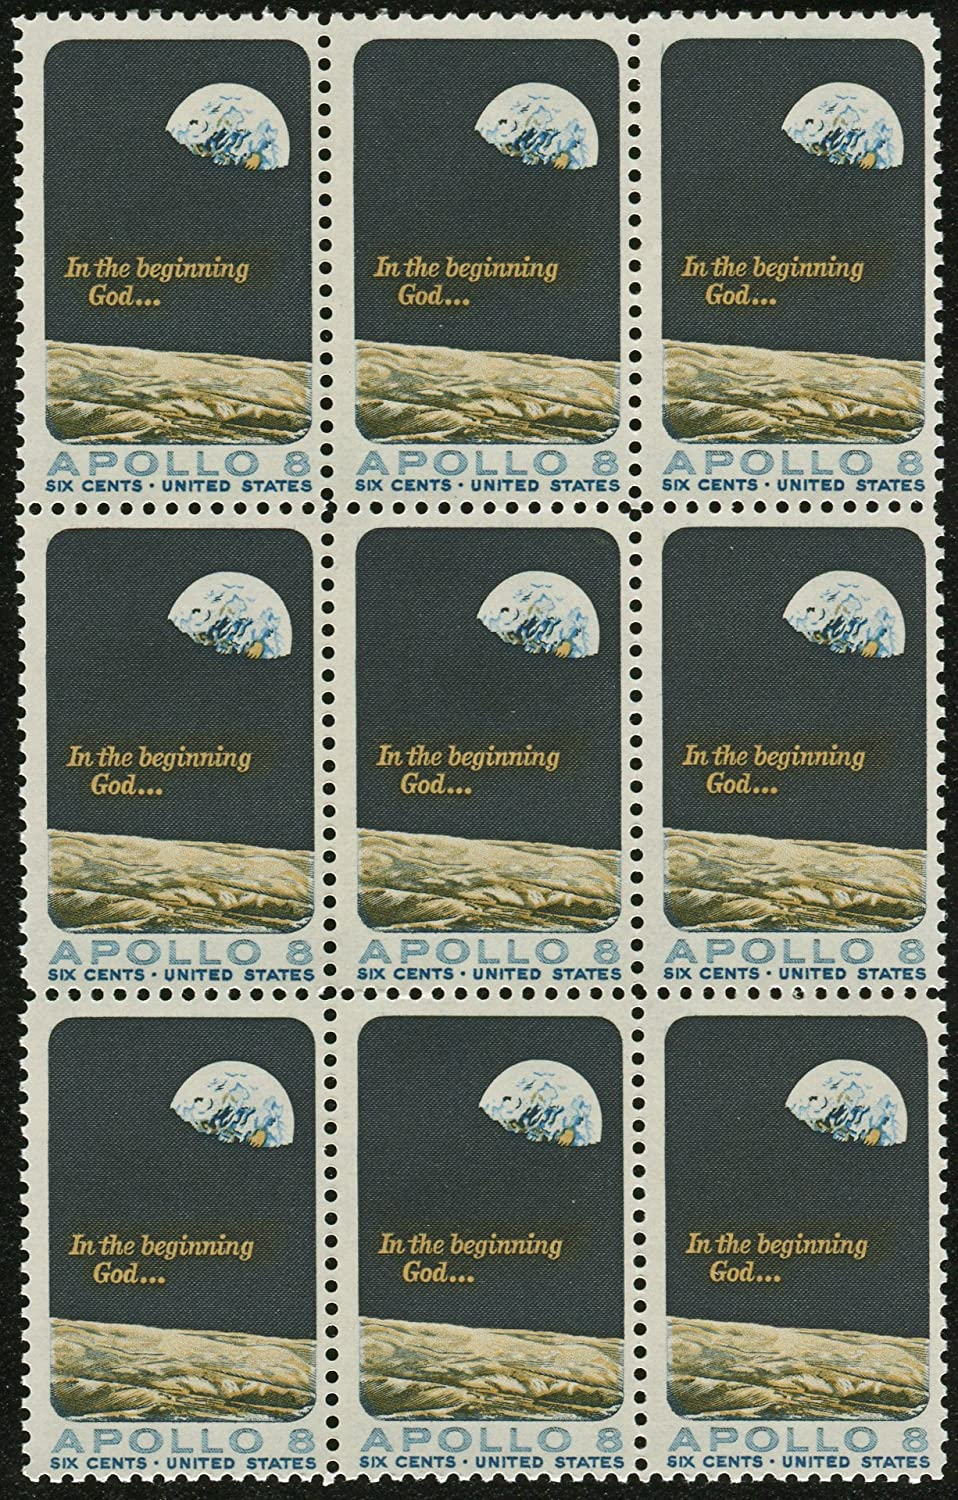 EARTH RISE ~ APOLLO 8 ~ FIRST HUMAN SPACE FLIGHT ~ MOON ~ EARTH #1371 BLOCK OF 9 X 6 US Postage Stamps